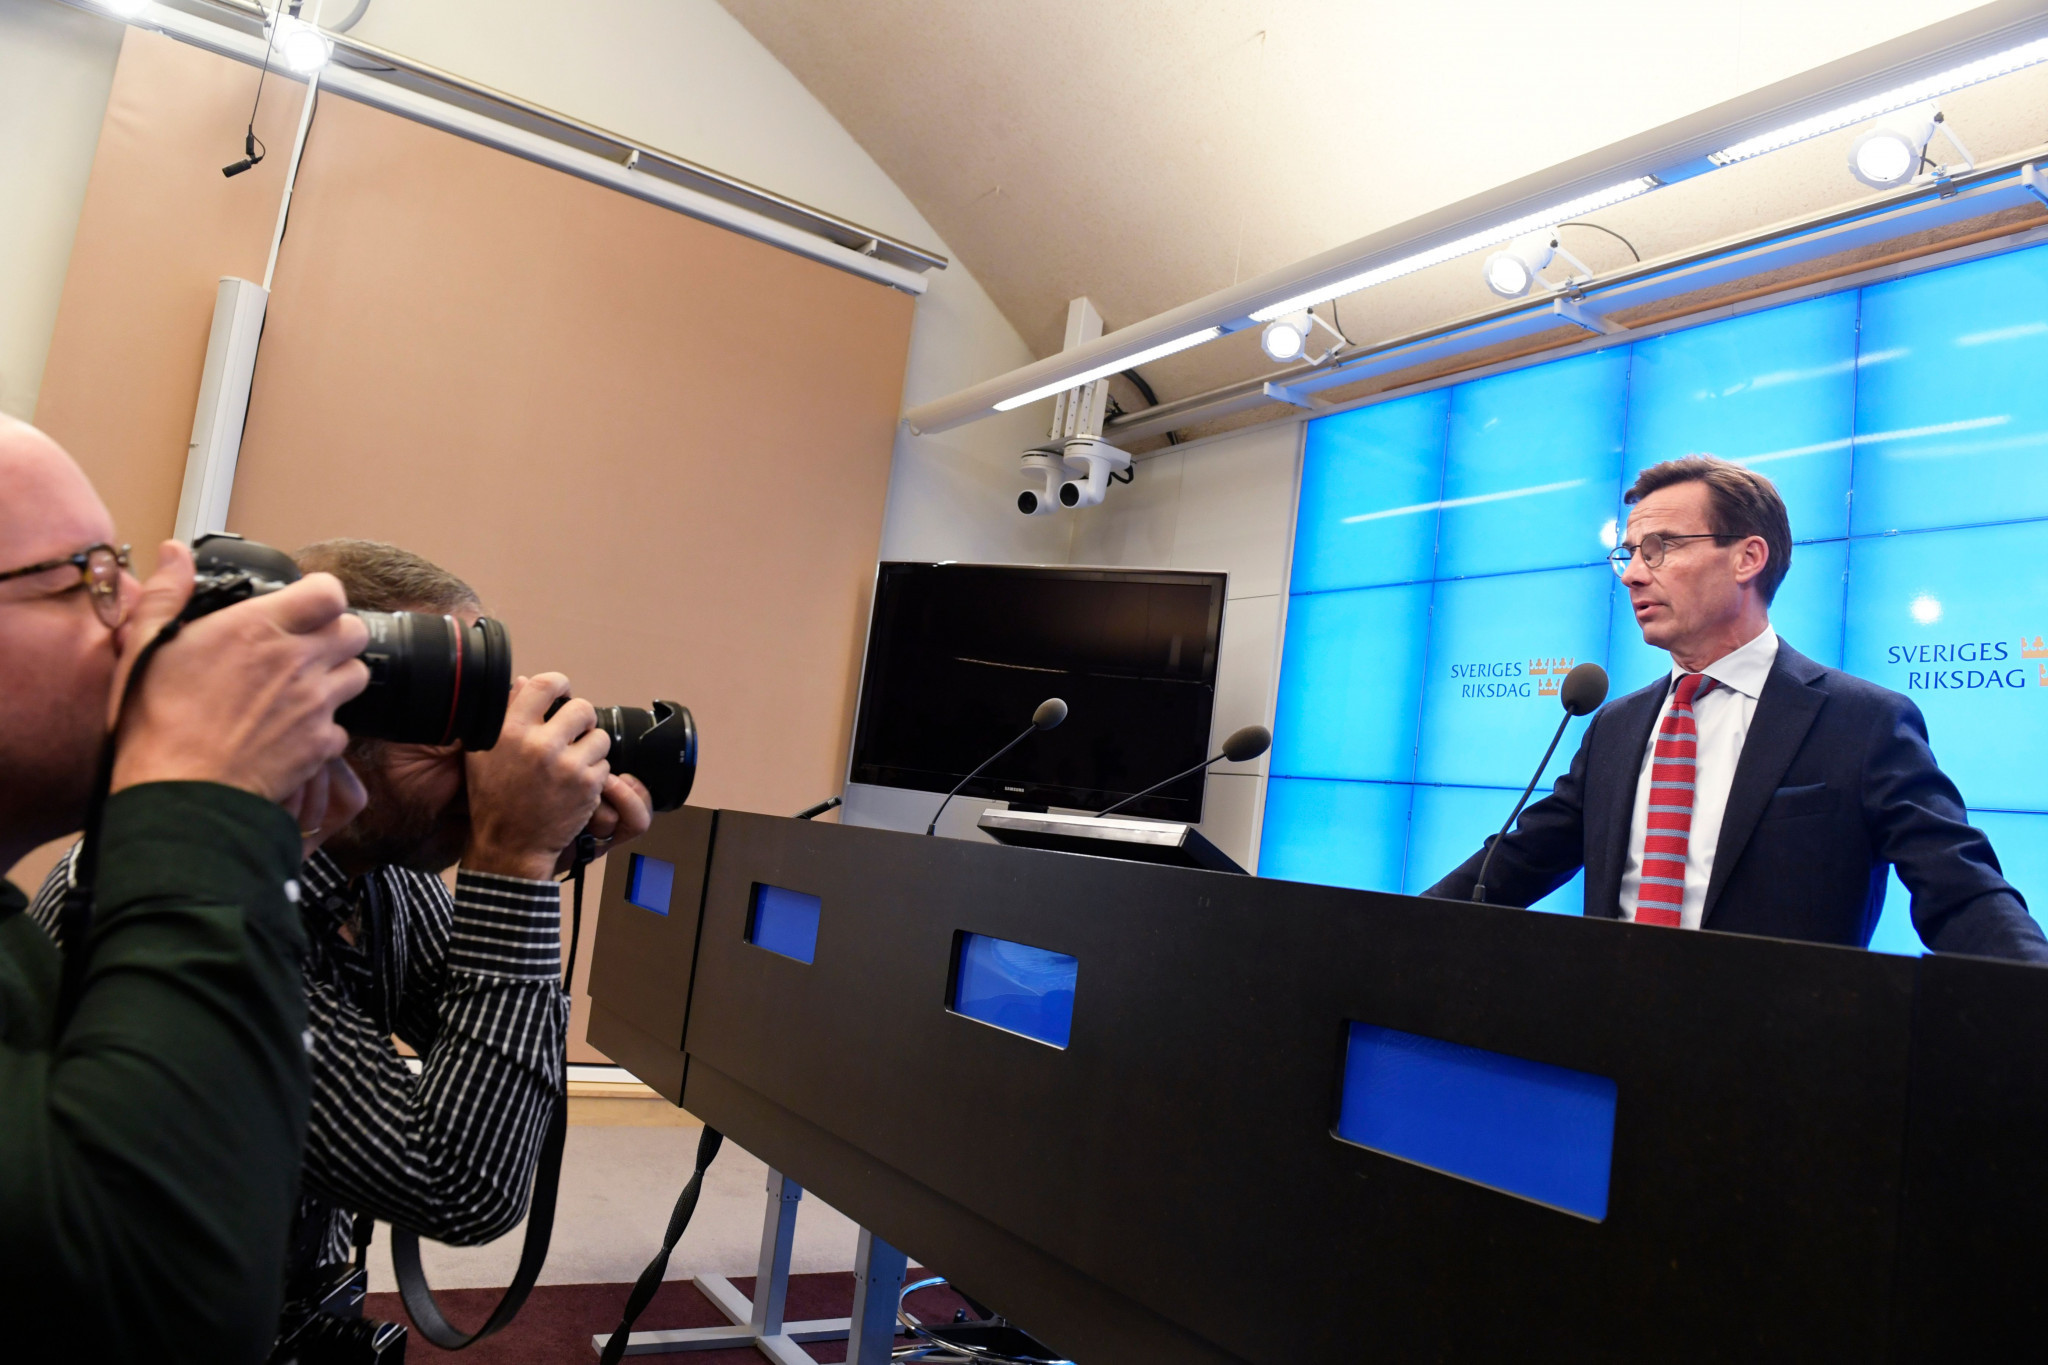 Stockholm 2026 will be hoping the potential appointment of Ulf Kristersson as Sweden's new Prime Minister will break the political deadlock in the country and help them gain Government support for their bid ©Getty Images